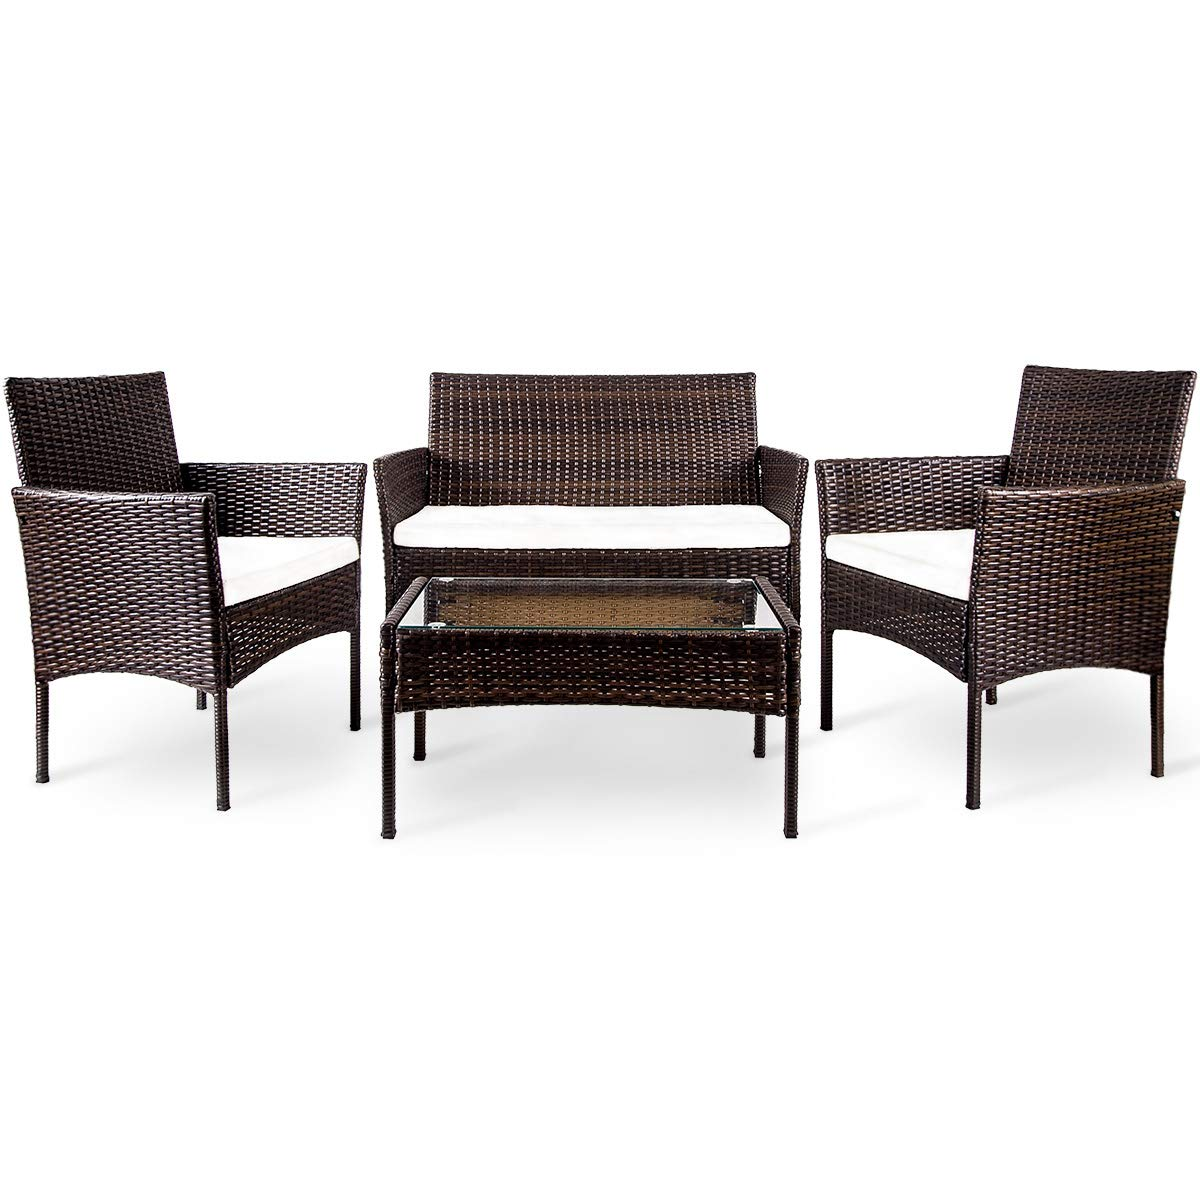 LZ LEISURE ZONE. 4 PC Rattan Chair Patio Furniture Set Garden Backyard Wicker Set Outdoor with Weather Resistant Cushions Wicker Sofa (Brown)